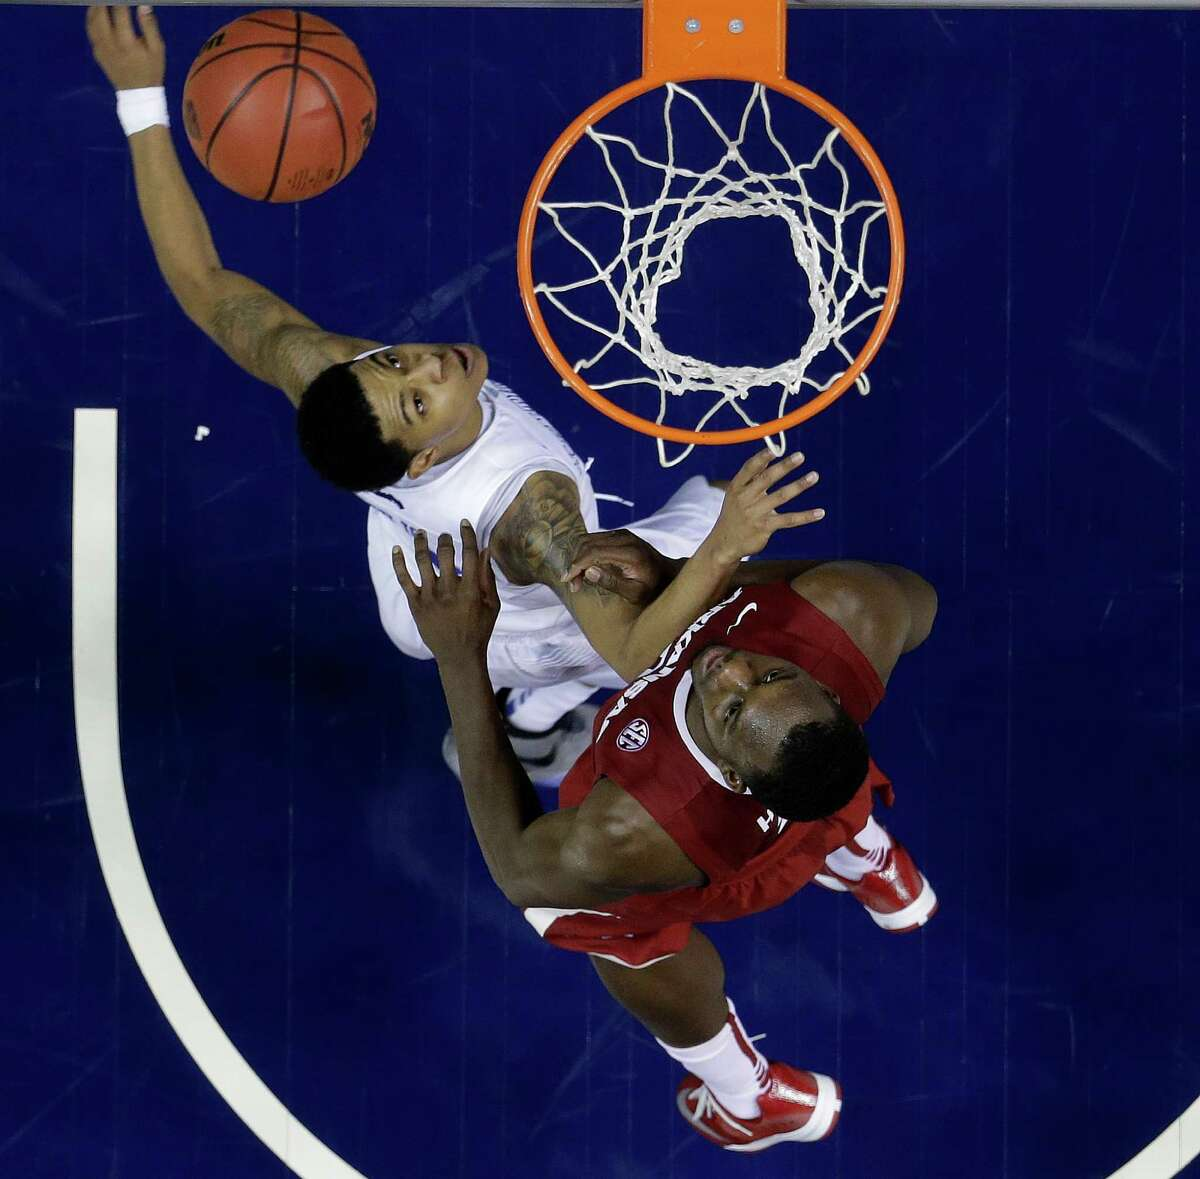 Kentucky guard Devin Booker (1) and Arkansas forward Alandise Harris (2) wait for a rebound during the second half of the NCAA college basketball Southeastern Conference tournament championship game, Sunday, March 15, 2015, in Nashville, Tenn. Kentucky won 78-63. (AP Photo/Mark Humphrey) ORG XMIT: TNMS164